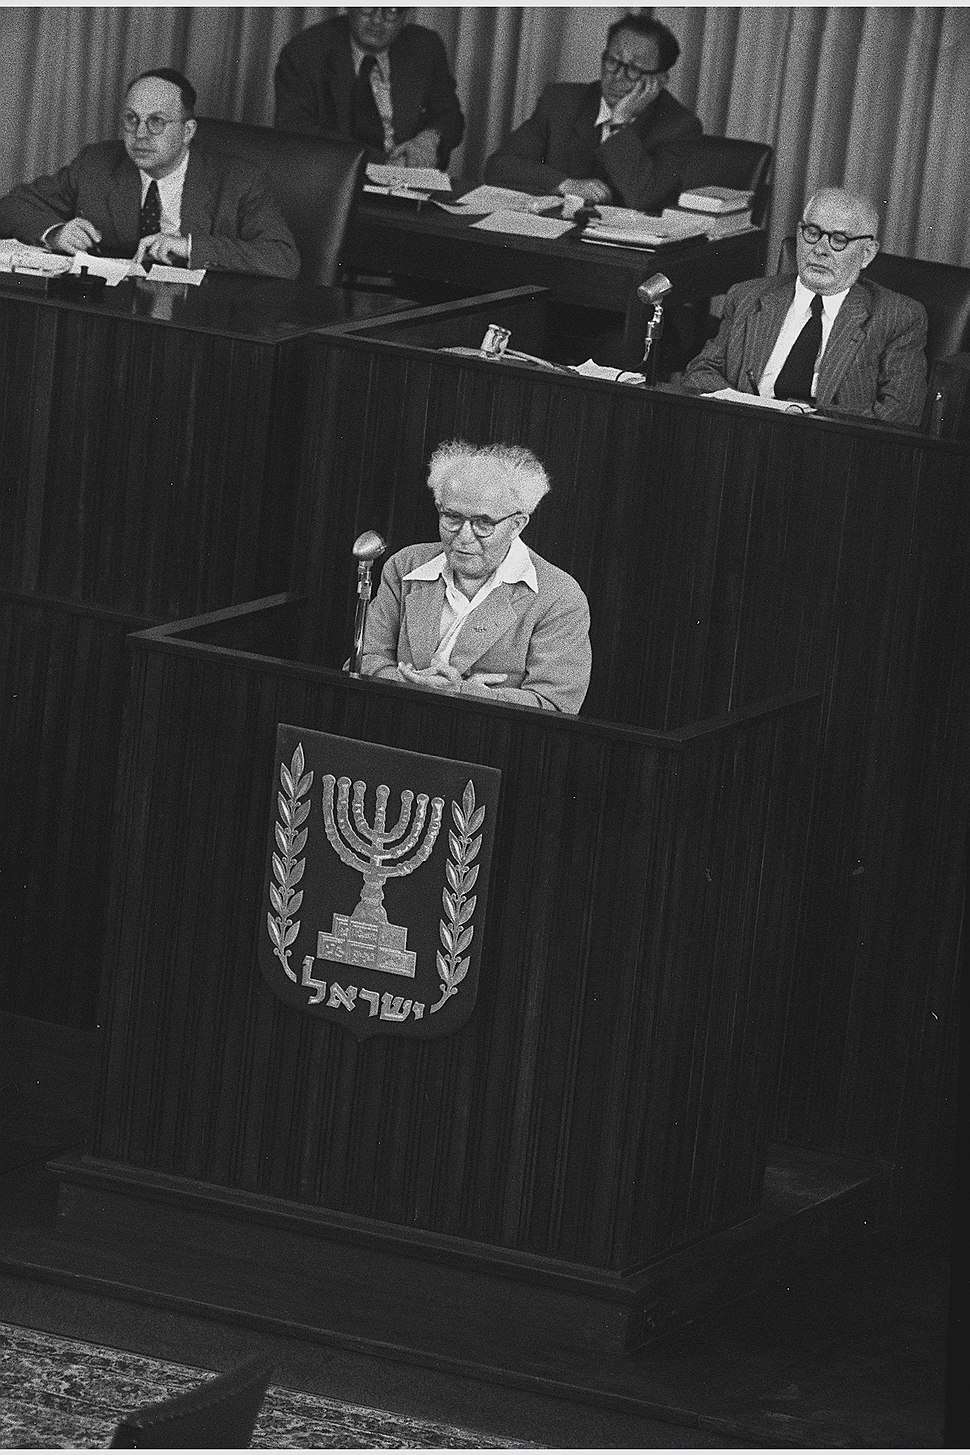 Flickr - Government Press Office (GPO) - PM DAVID BEN GURION SPEAKING IN THE KNESSET IN TEL AVIV